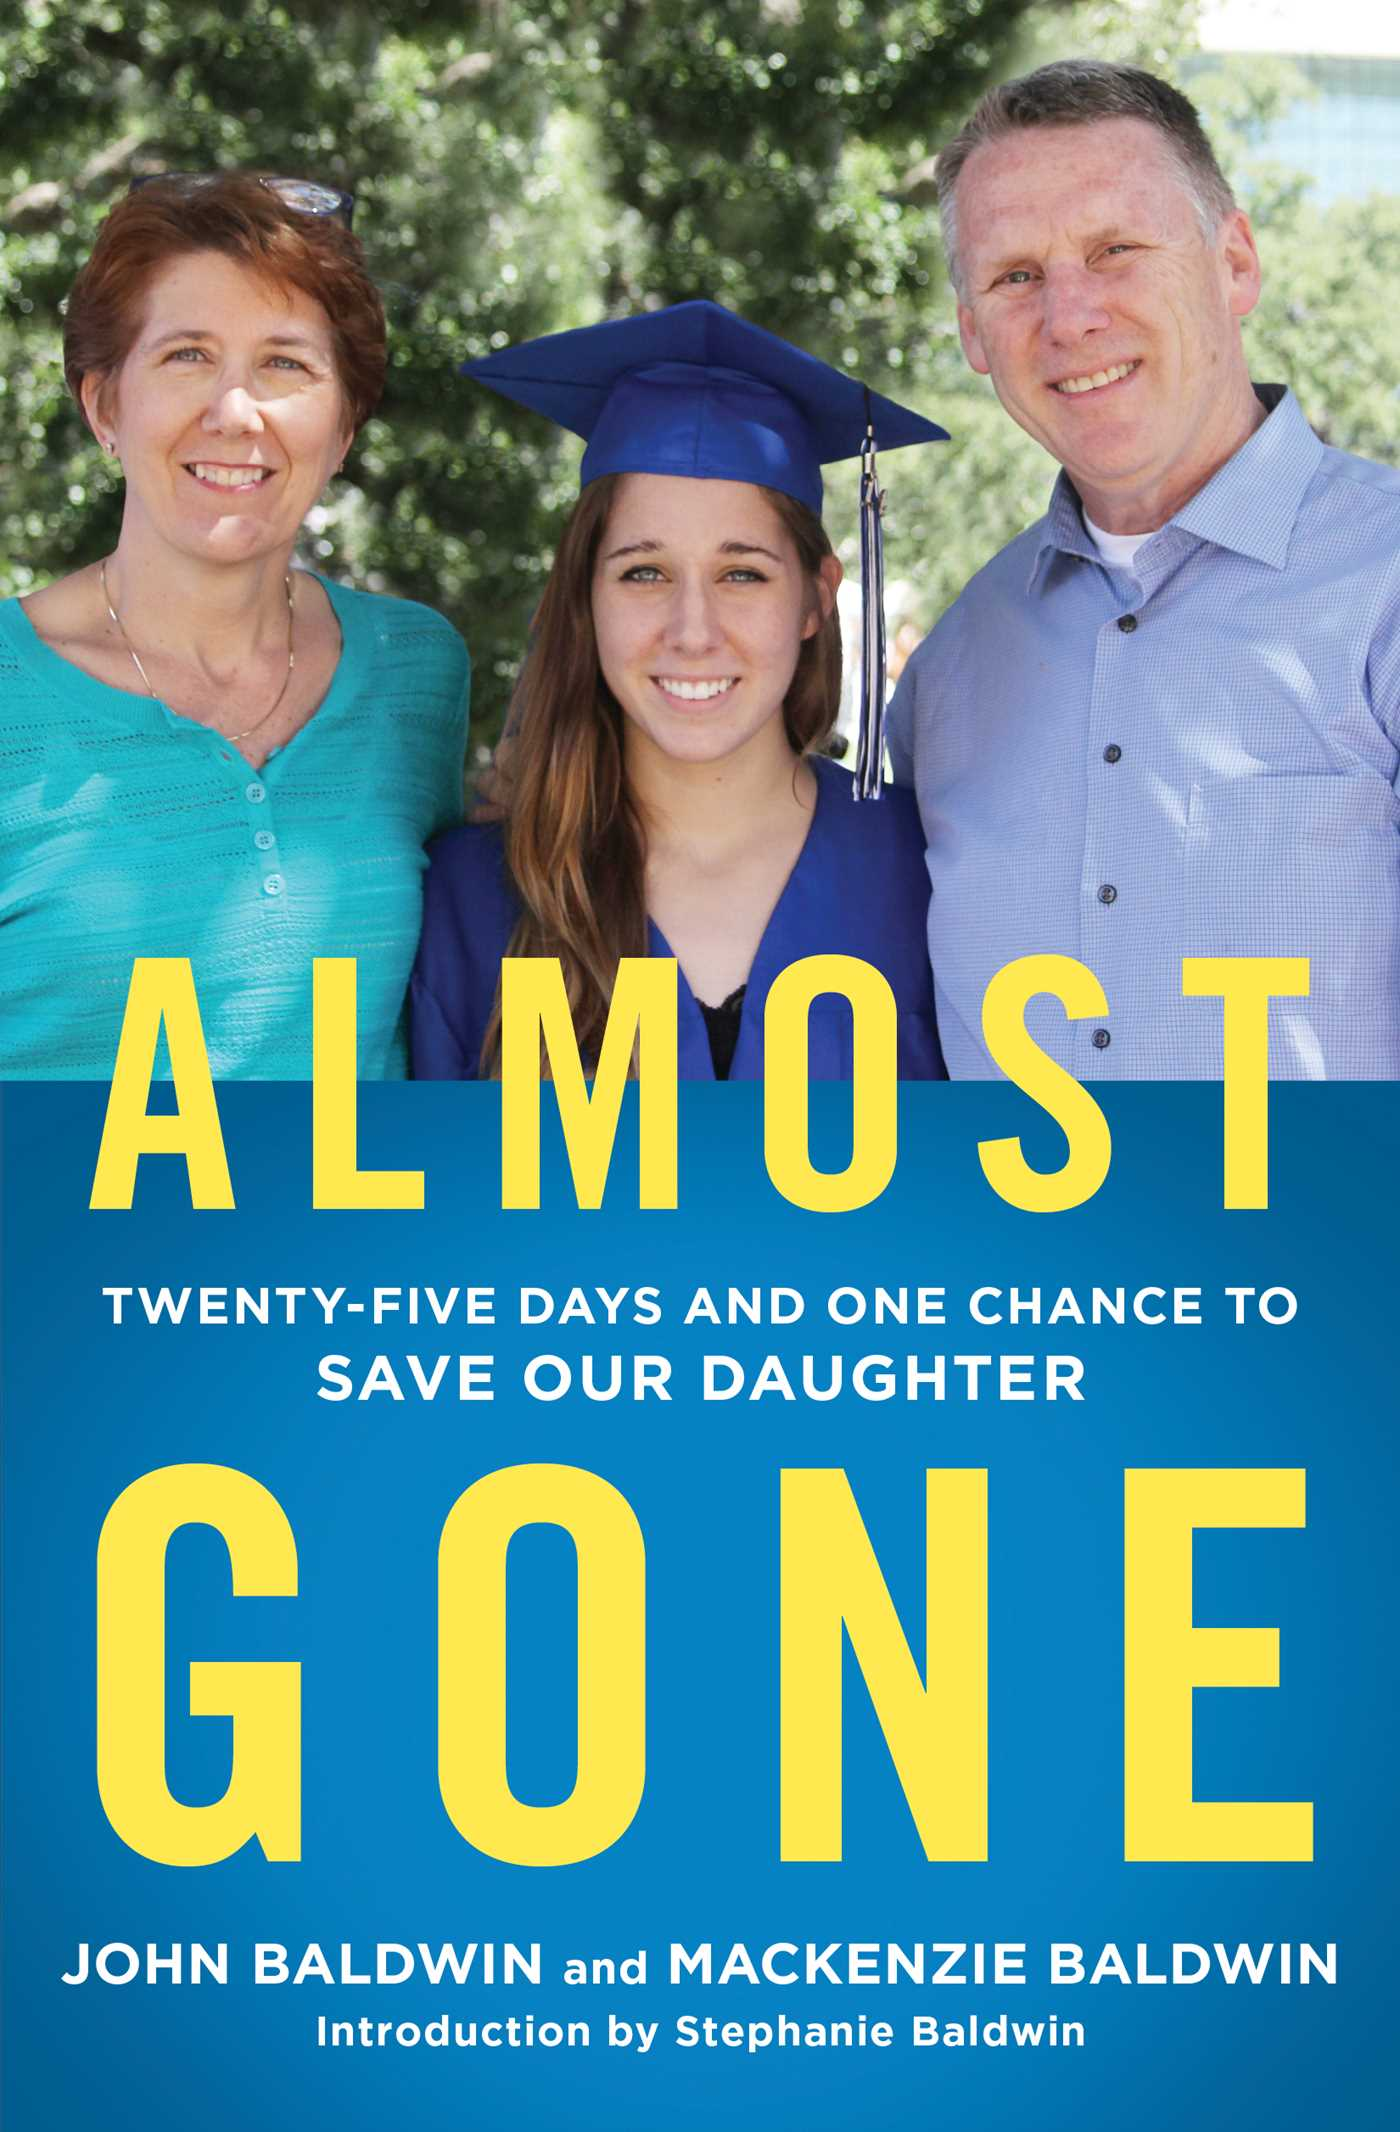 Almost Gone Twenty-Five Days and One Chance to Save Our Daughter